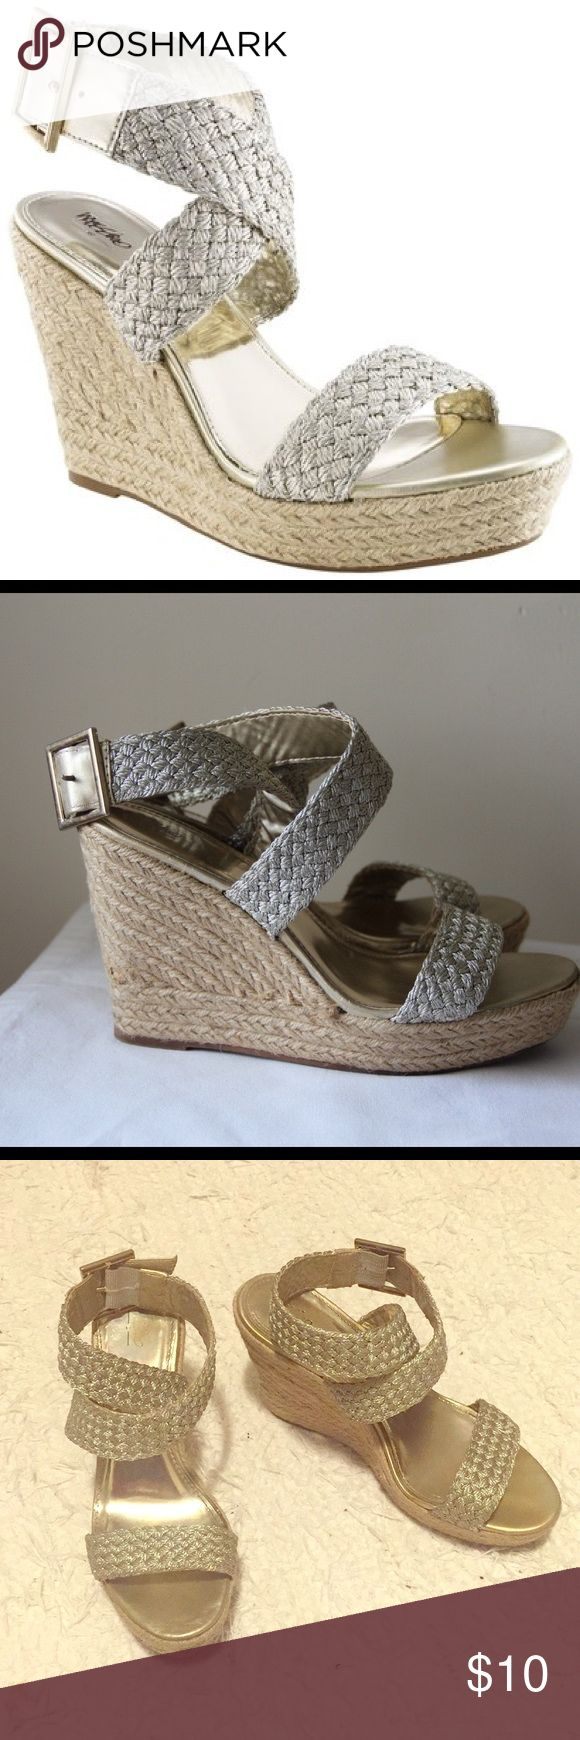 Gold Espadrilles Wedges Gold espadrilles wedges in great condition! Super comfortable and worn only 3 times. They're a 7.5 but would fit a 7 too, as the strap is adjustable. Mossimo Supply Co Shoes Espadrilles